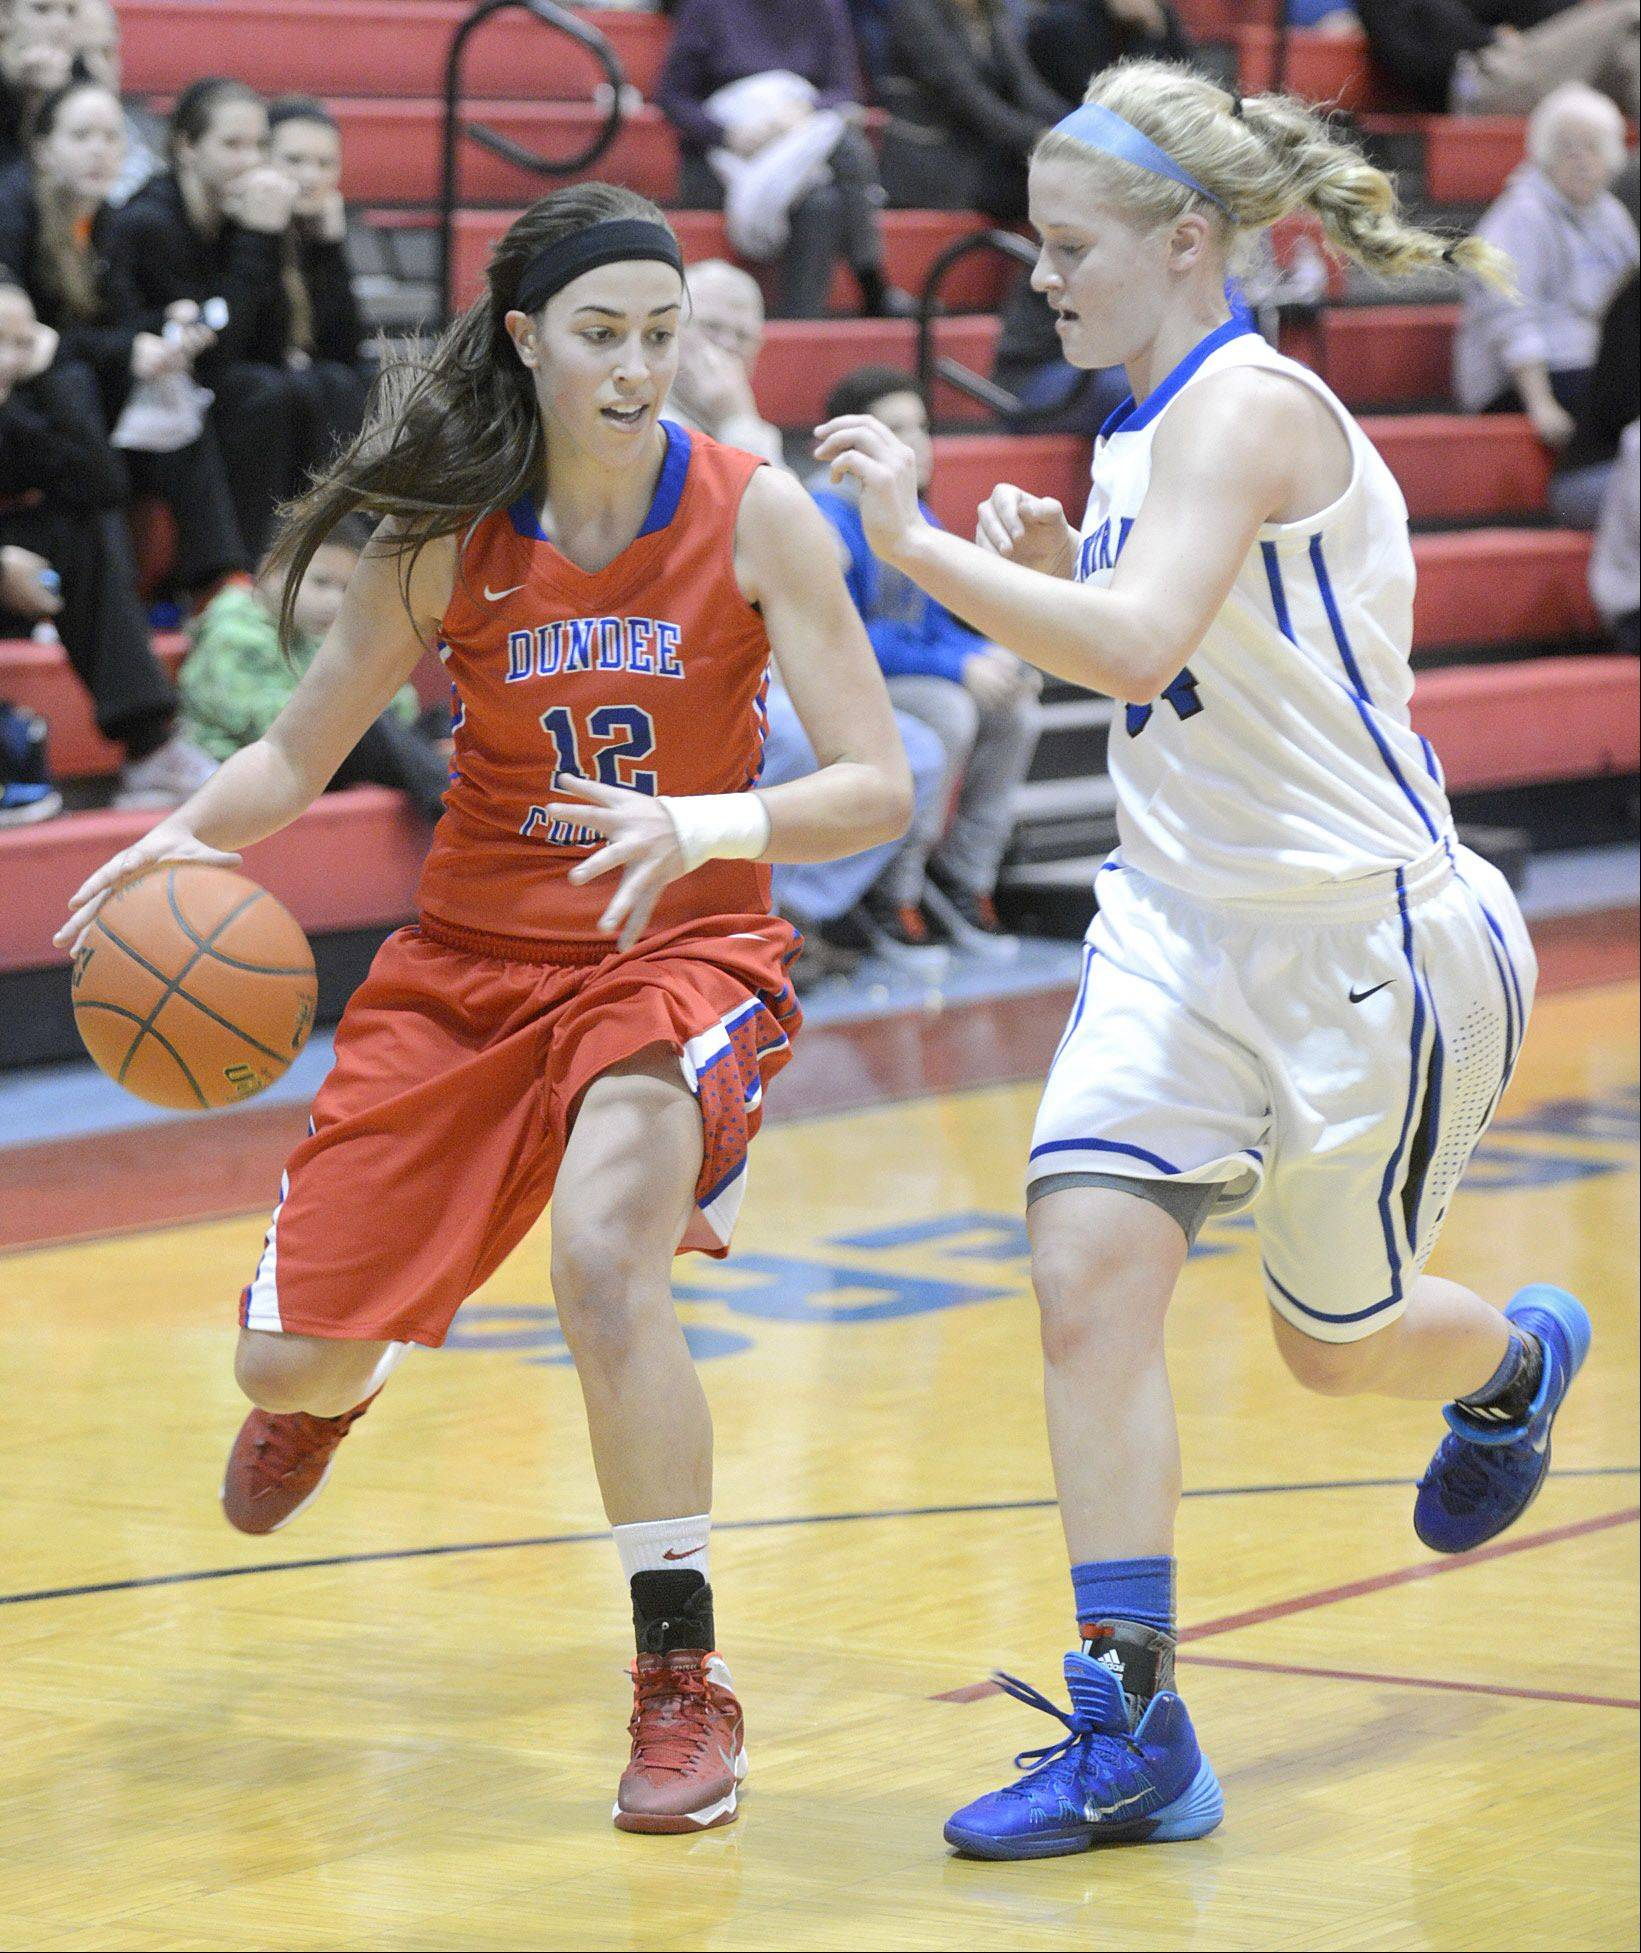 Dundee-Crown's Lauren Lococo looks to find away around Burlington Central's Sam Pryor in the second quarter on Friday.